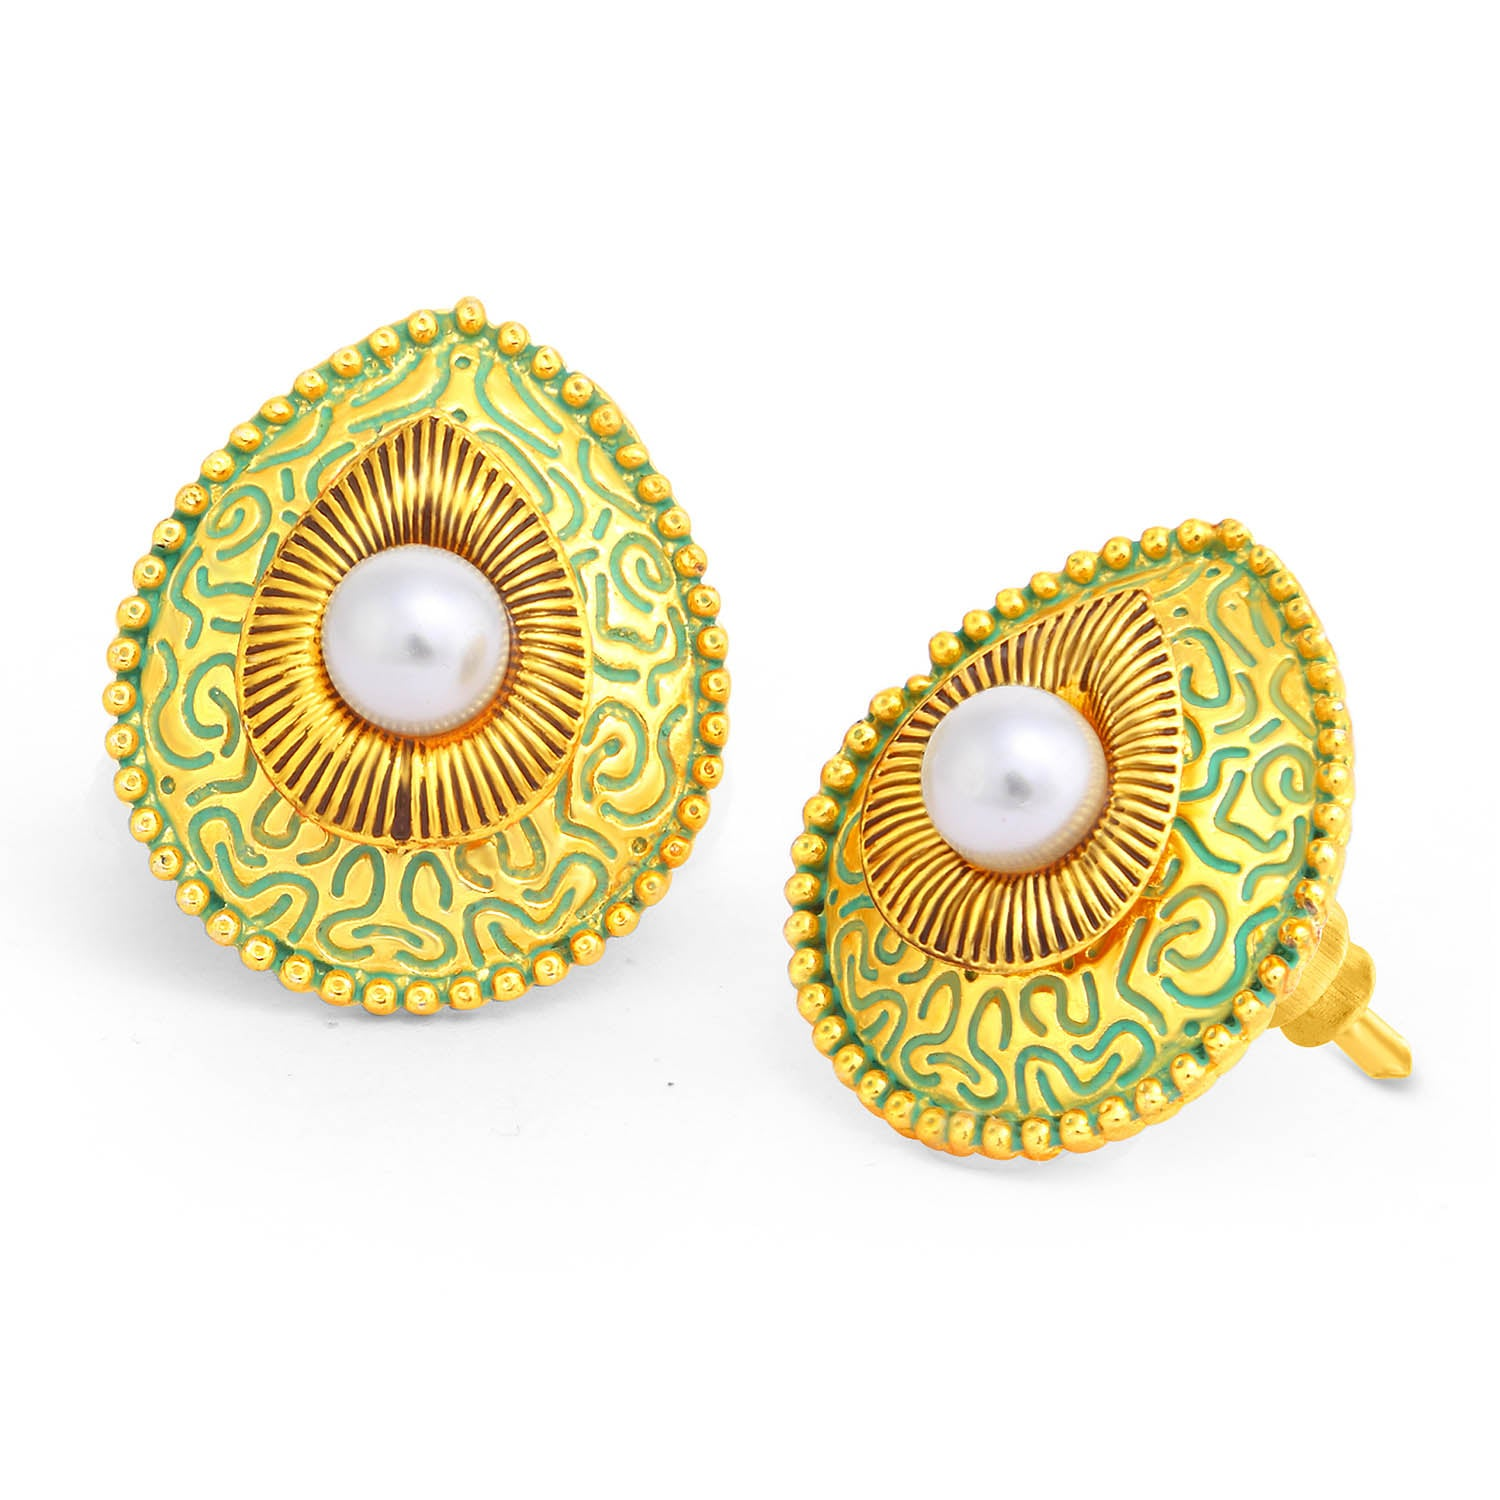 Sukkhi Precious Gold Plated Pearl Sky Blue Mint Meena Collection Stud Earring For Women-SUKKHI1-Earring